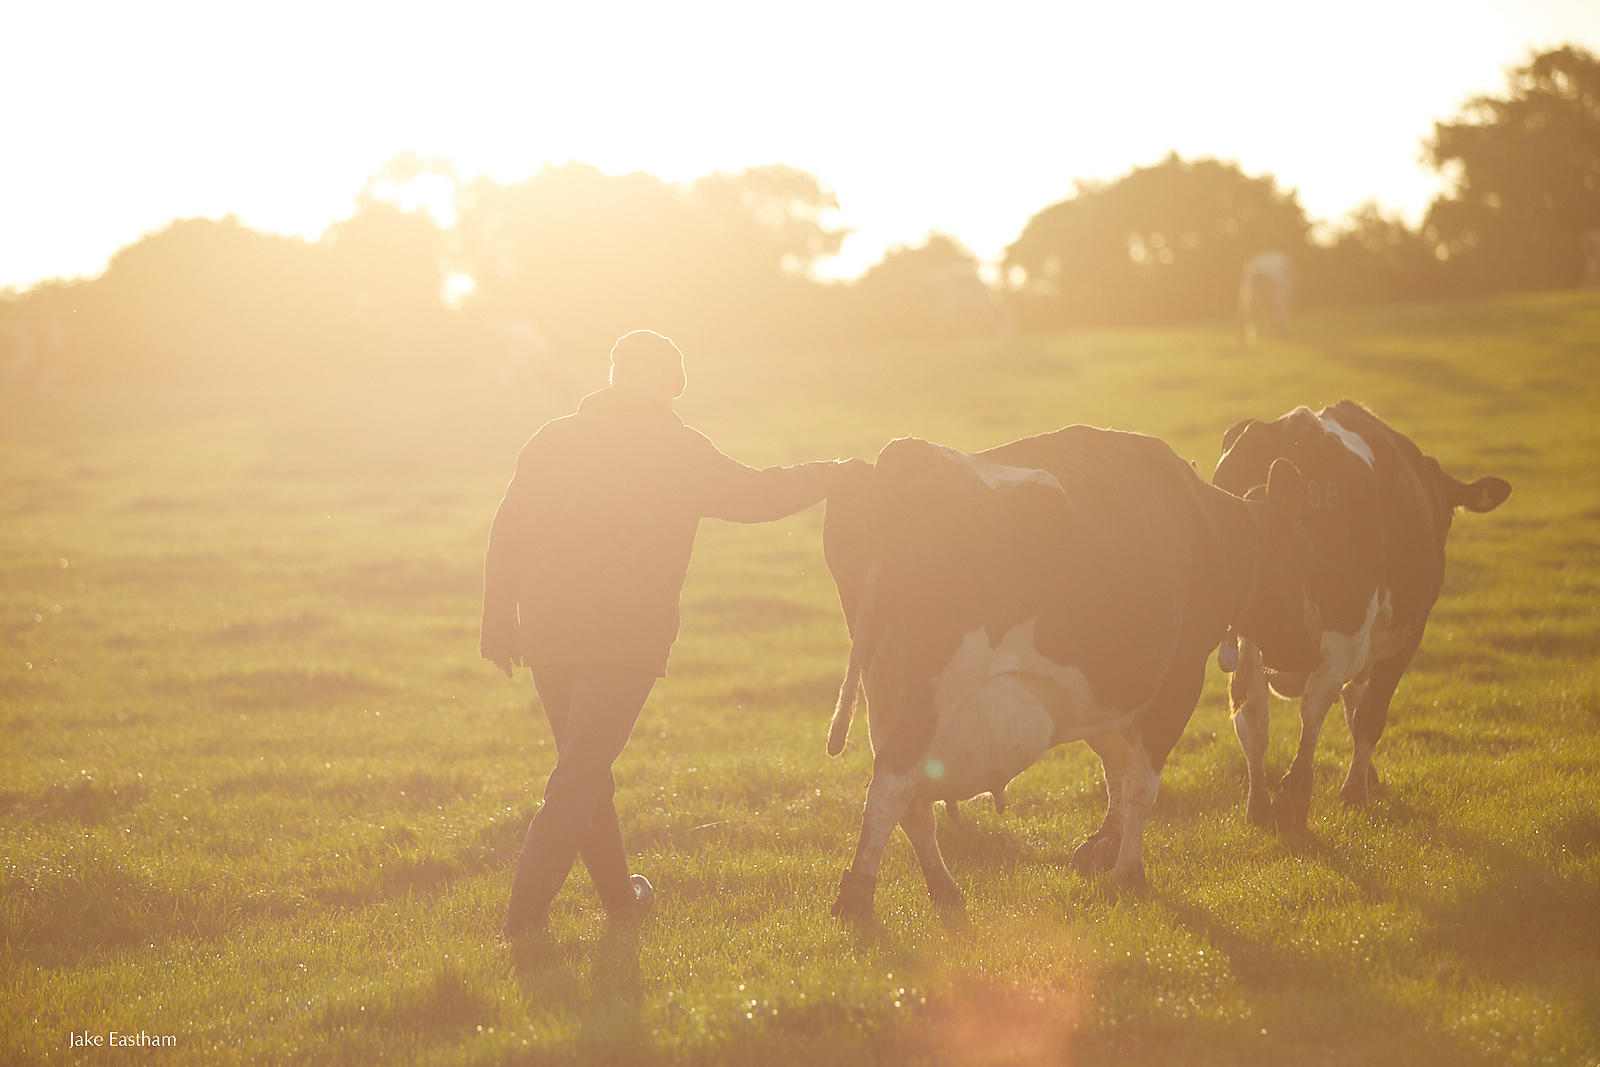 farm, dairy, milk, cattle, dairy cows, grass fed, outdoors, british farming, Jake Eastham